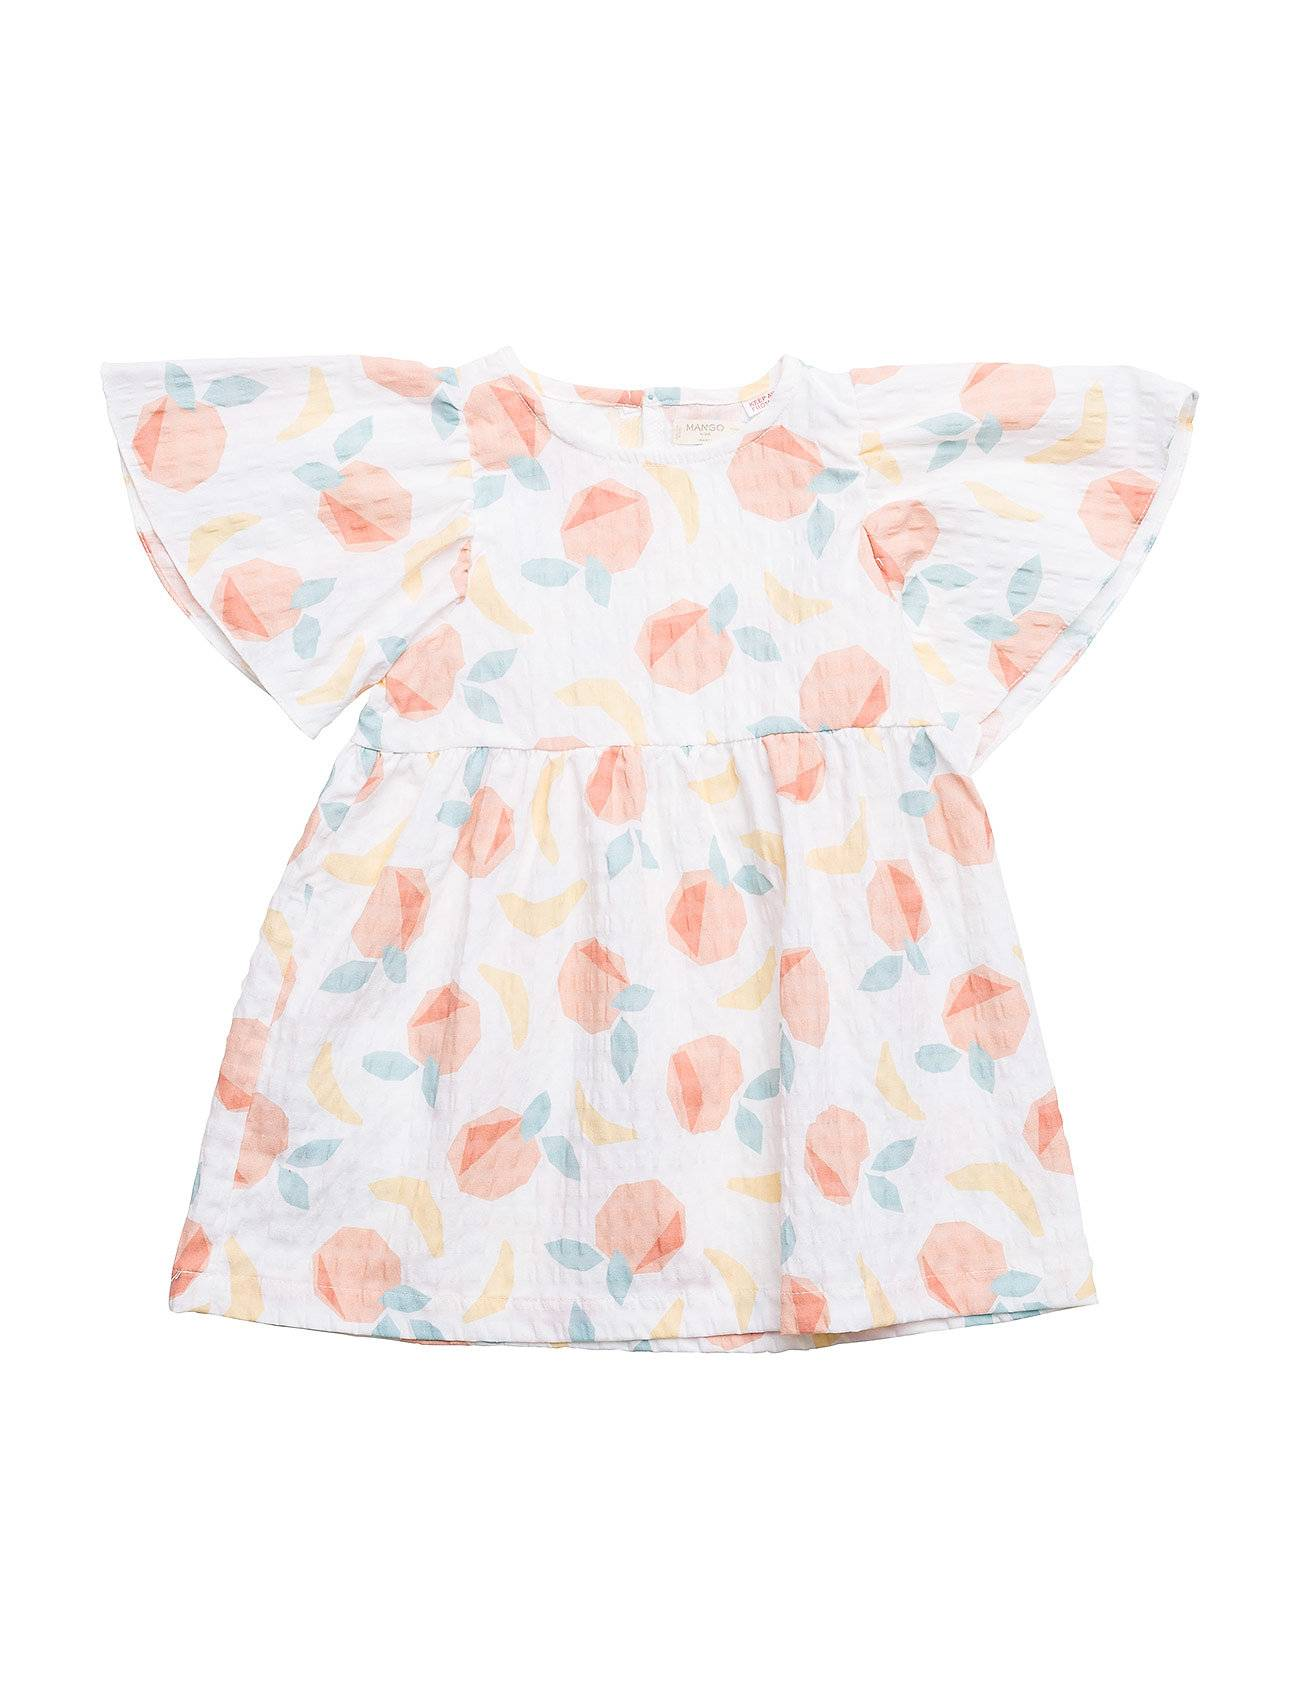 Mango Kids Fruits Printed Dress